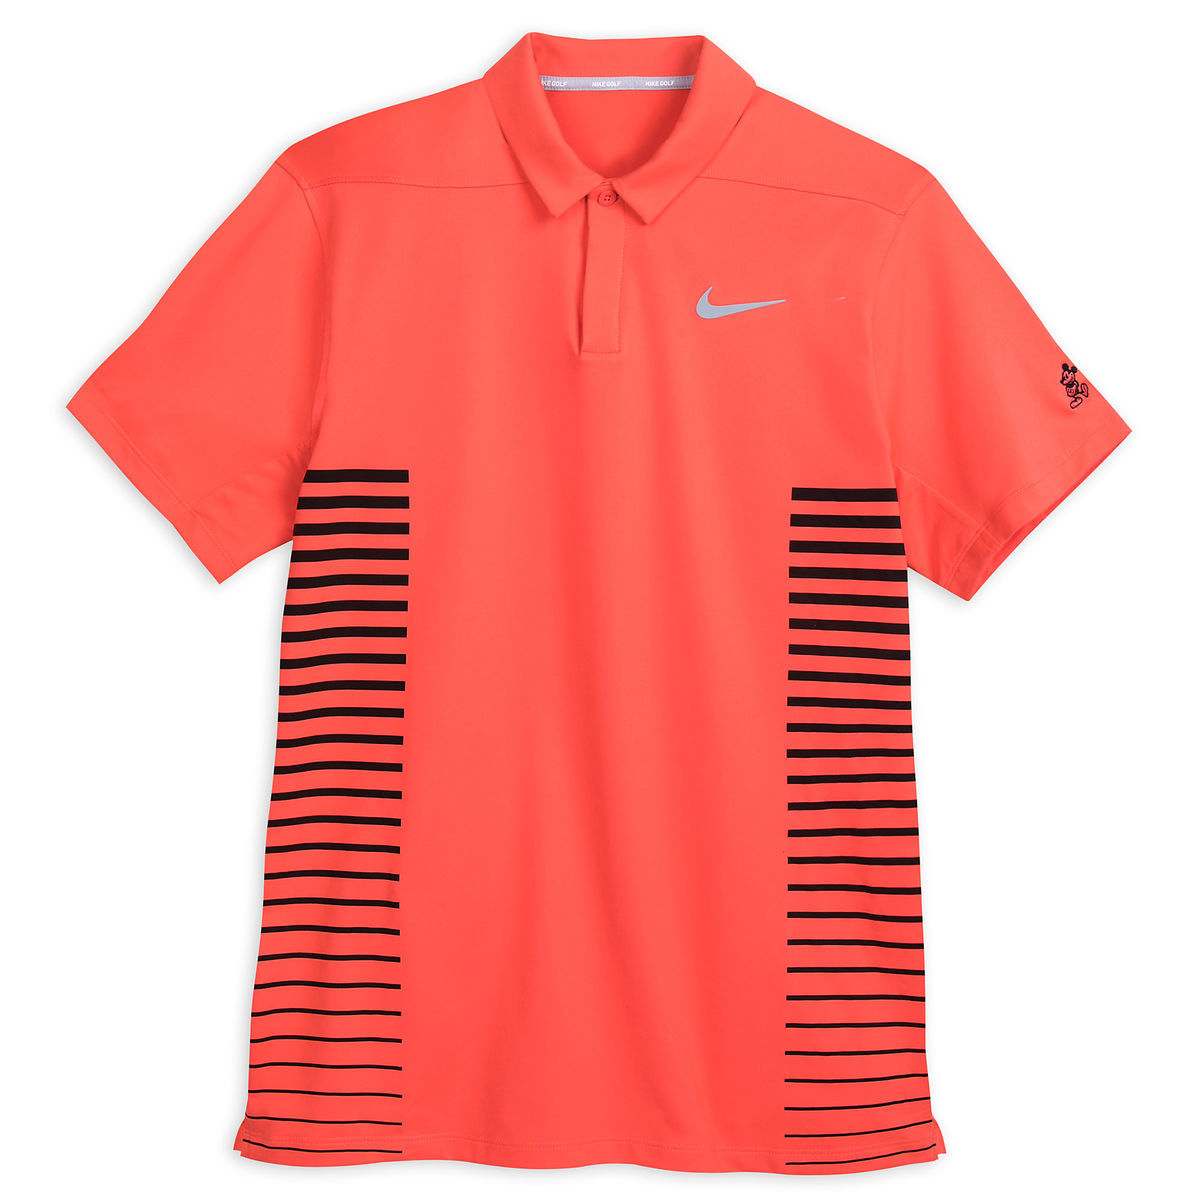 92d2a7bf Add to My Lists. Disney Men's Shirt - Mickey Performance Nike Golf ...